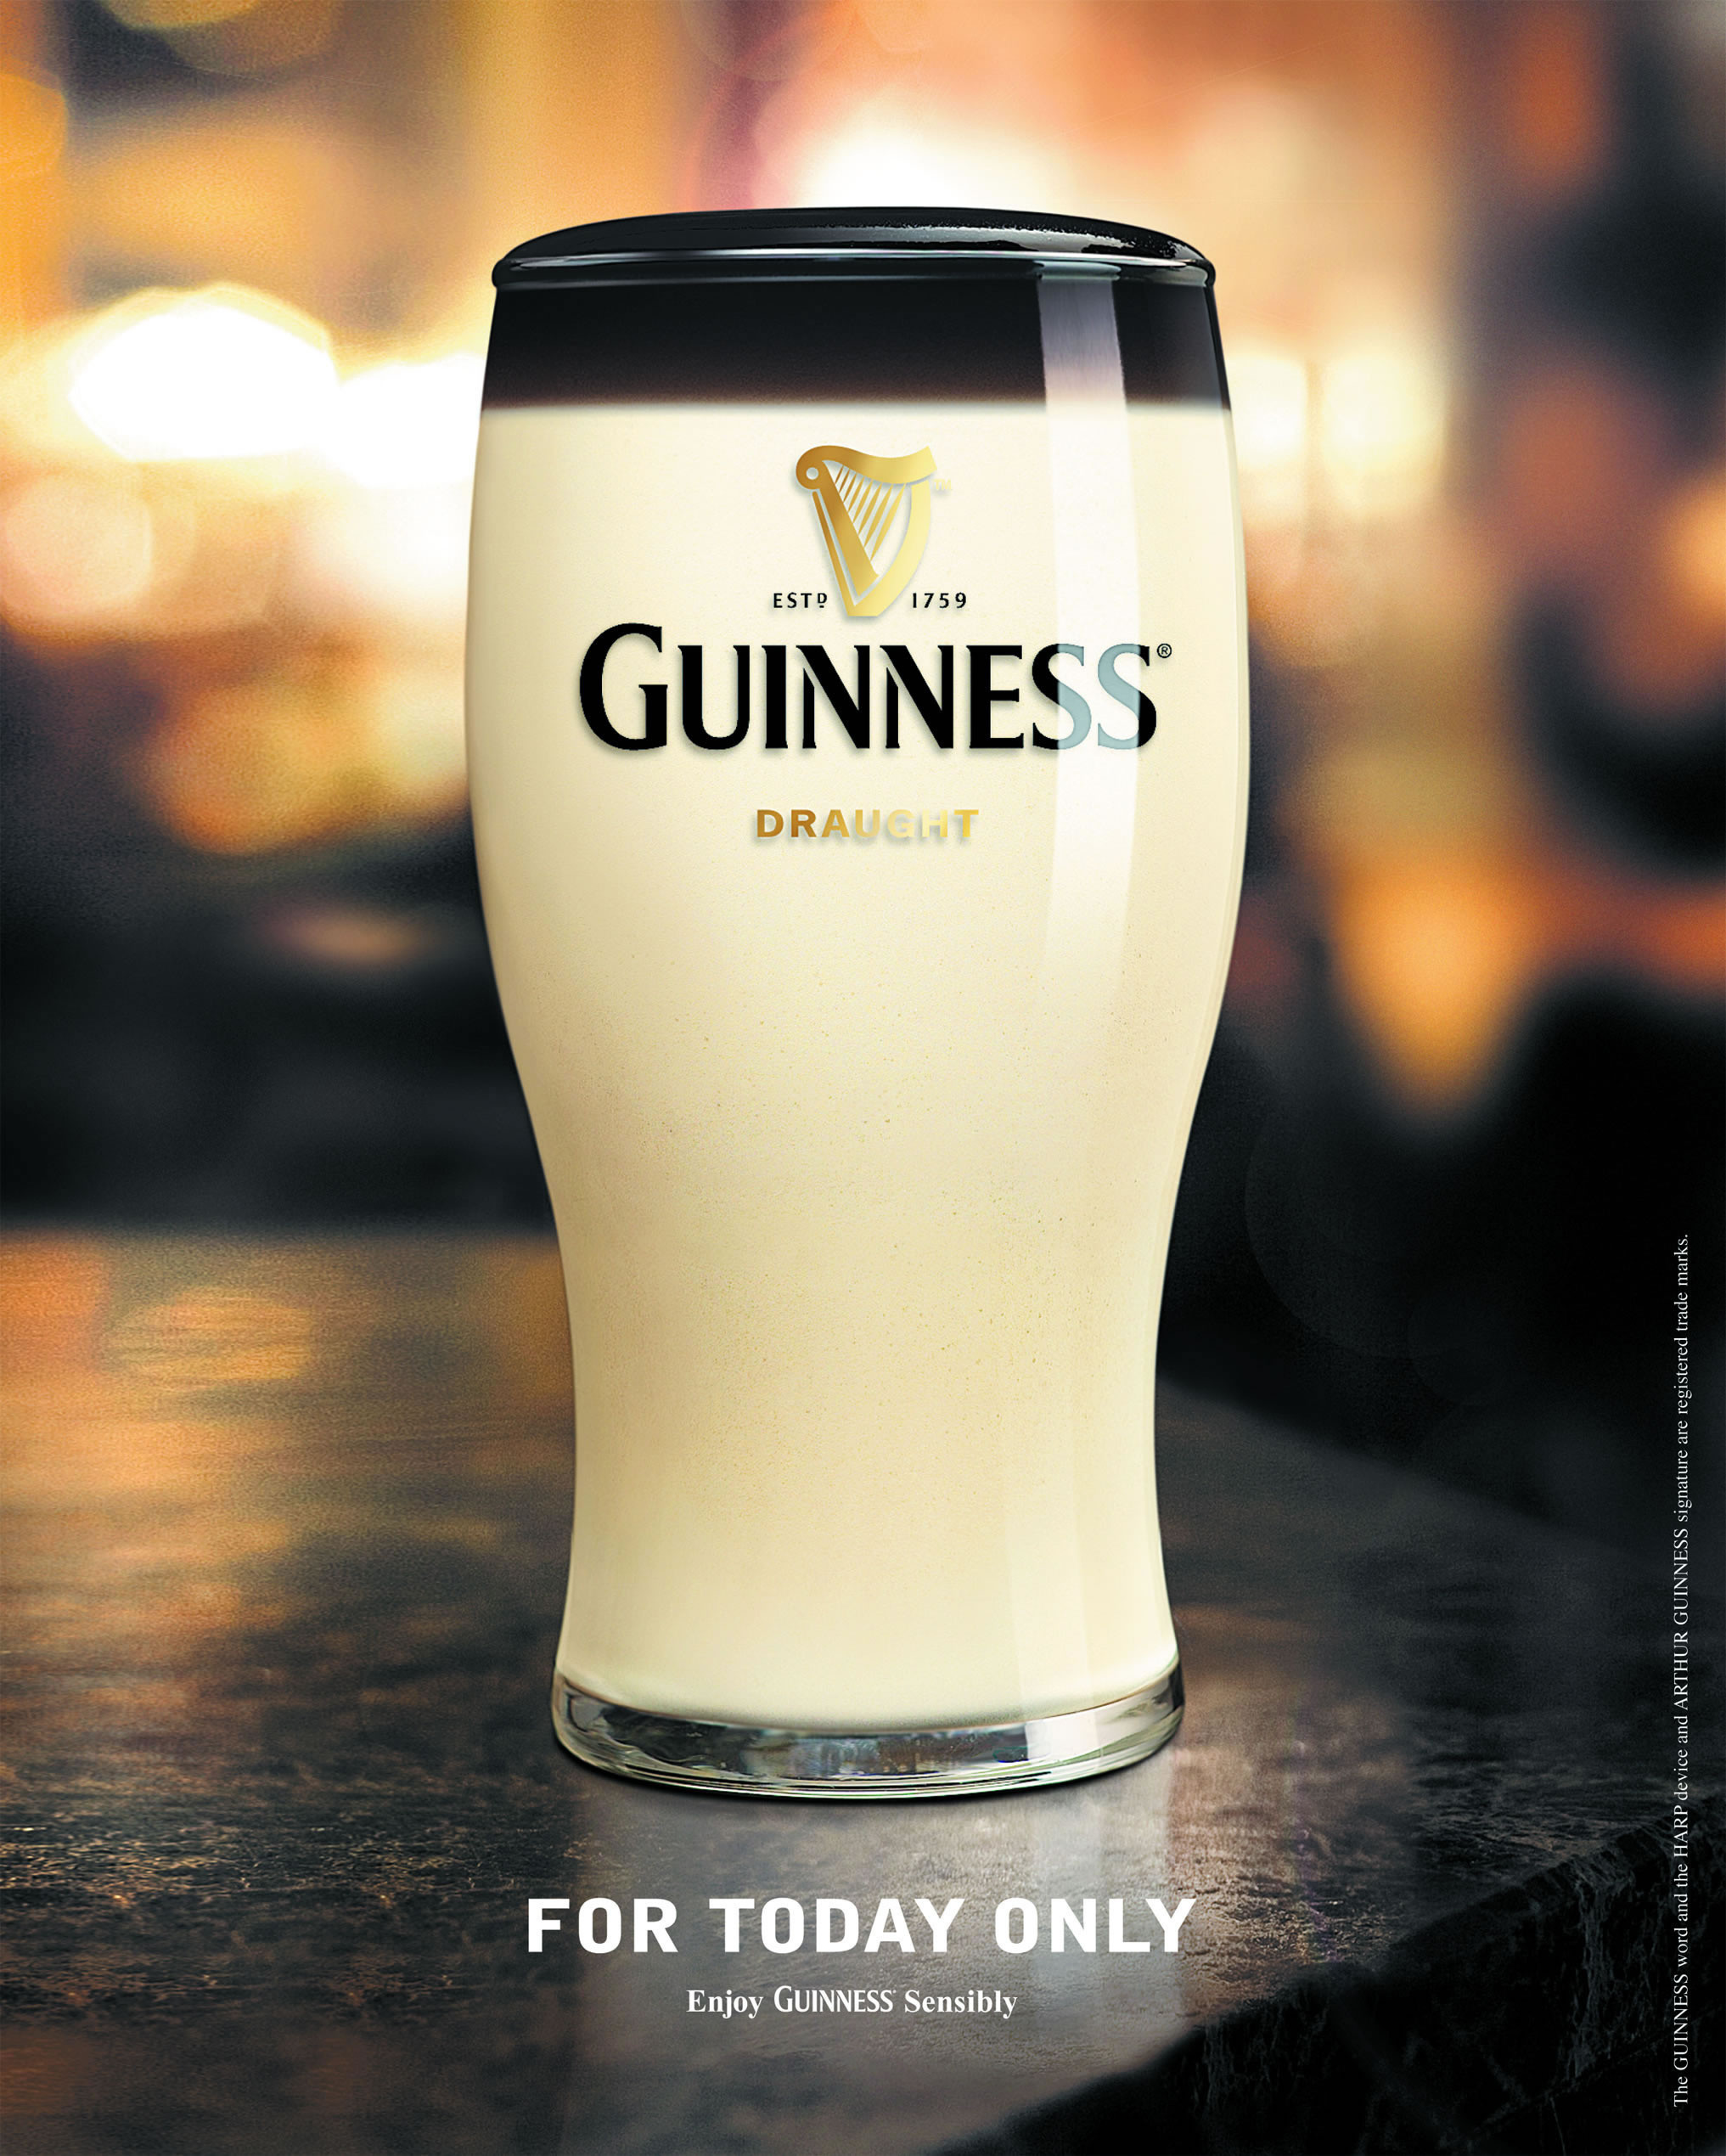 Res: 2033x2539, Images of Guinness Draught Wallpaper Hd 1920x1080 - #SC